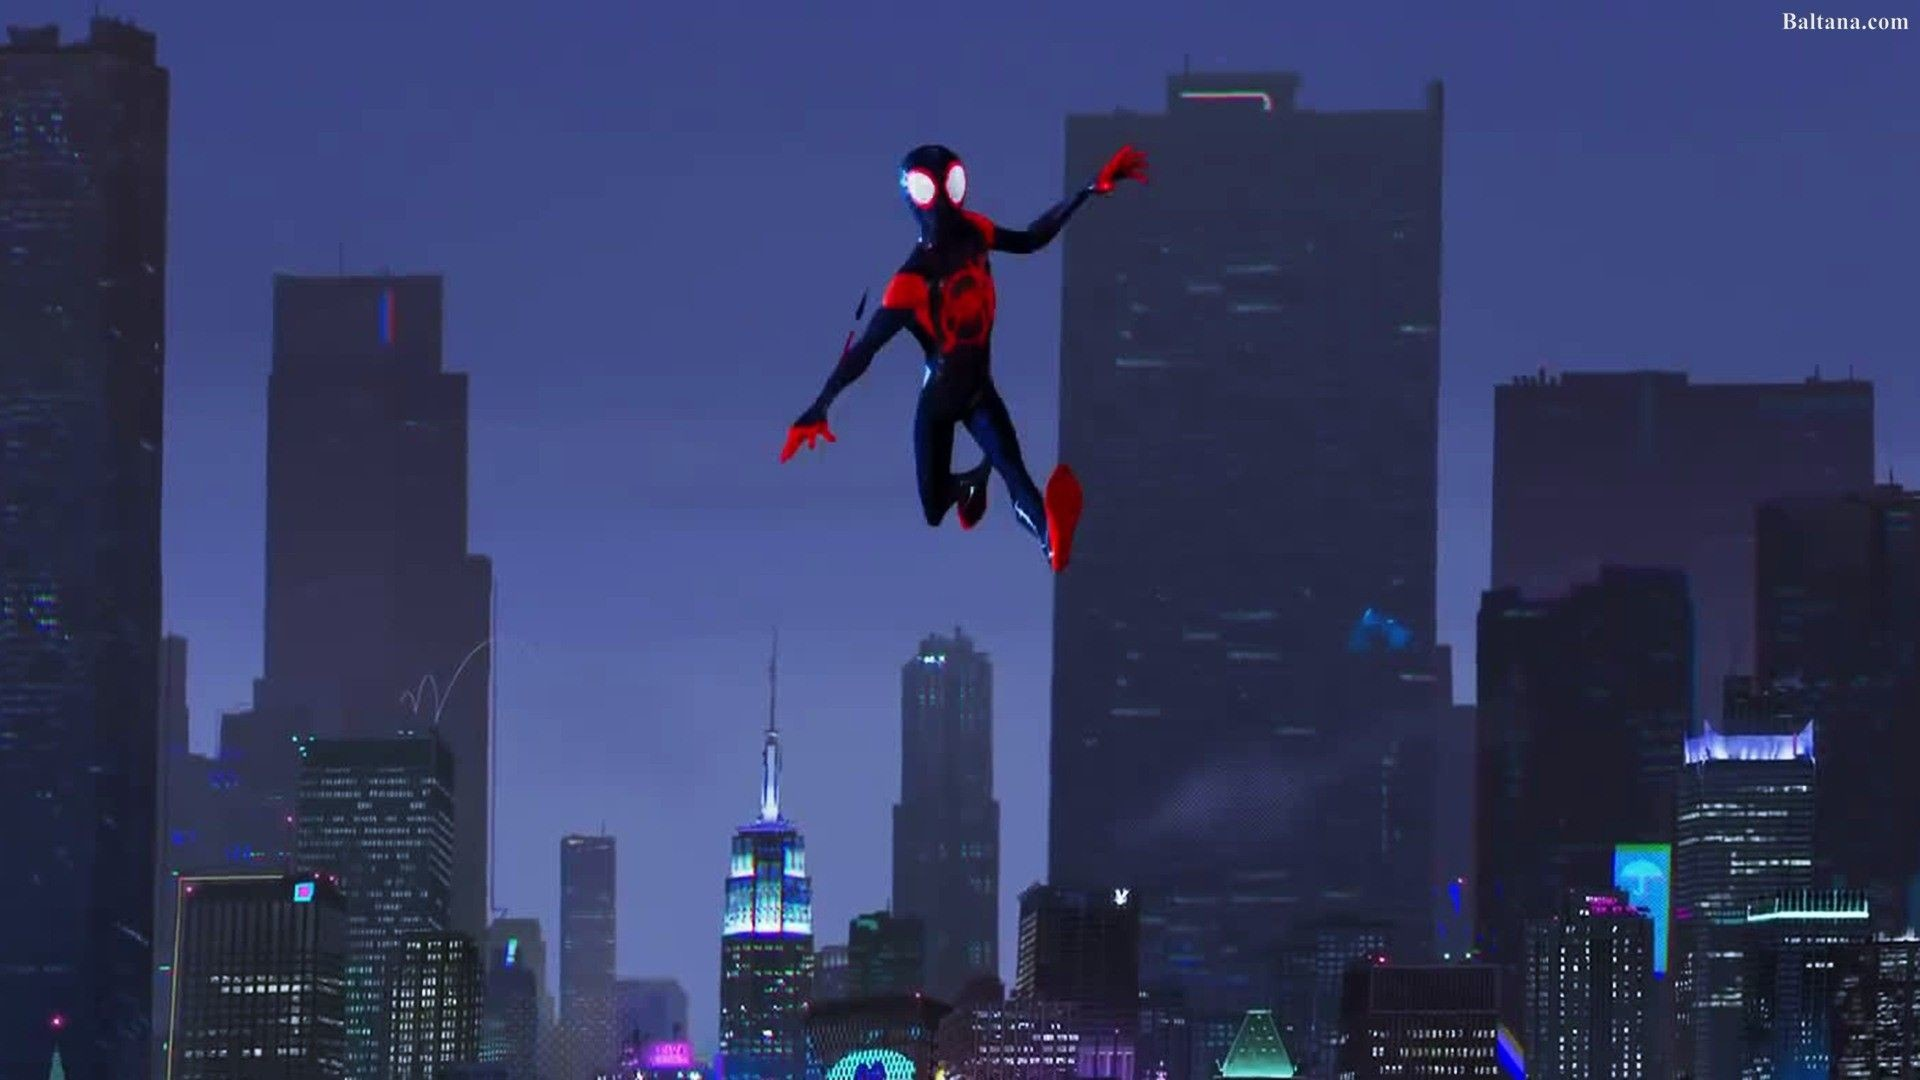 1920x1080 Spiderman Into The Spider Verse Animated Movie HQ Desktop Wallpaper .